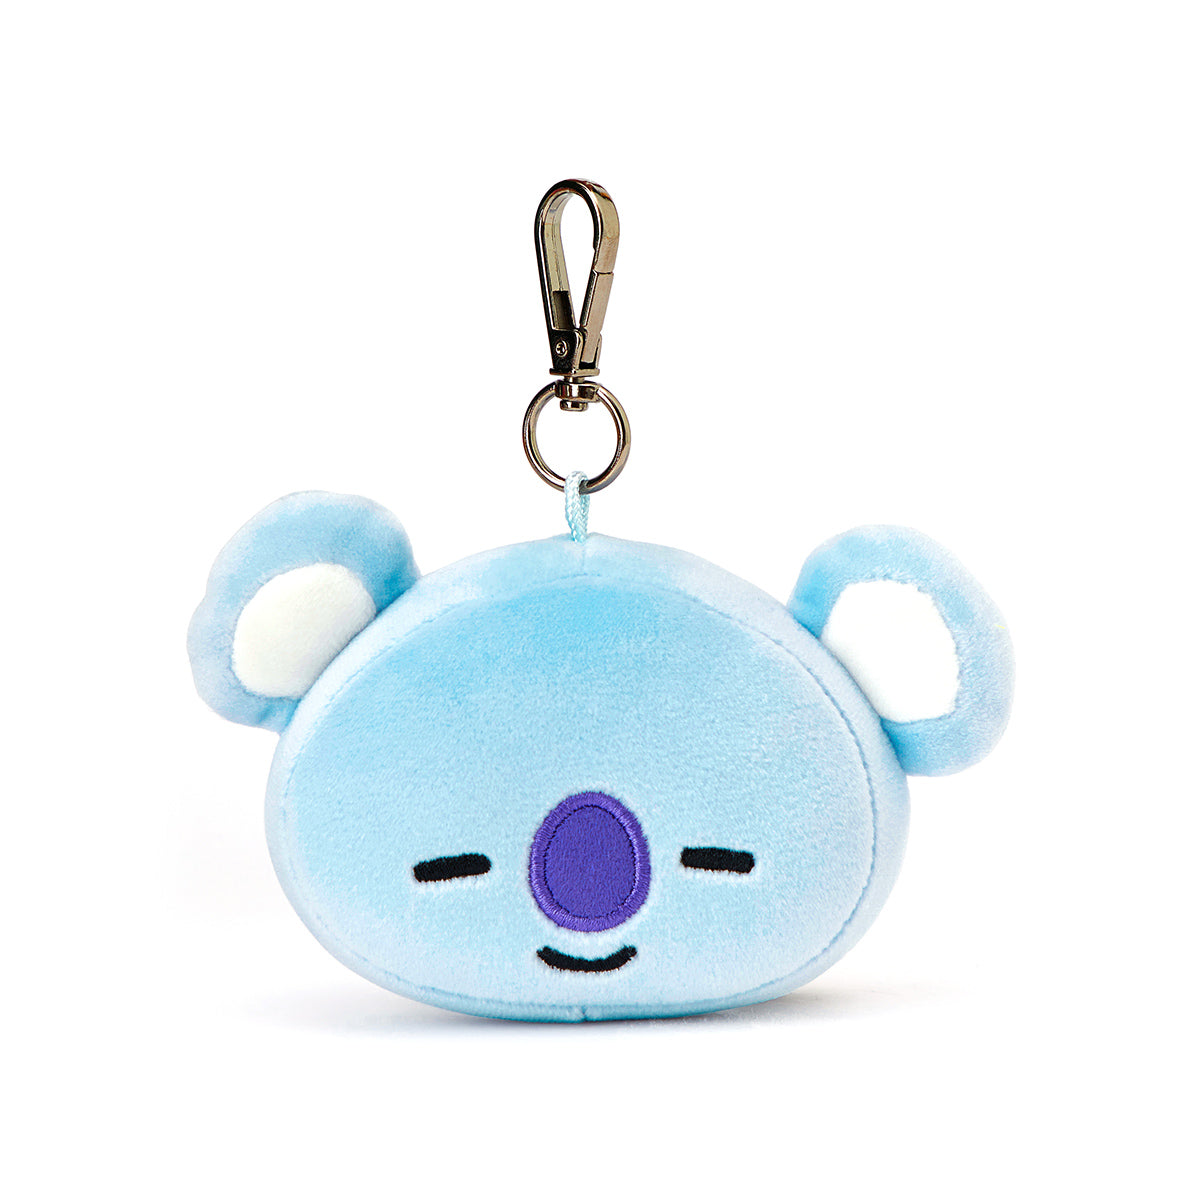 BT21 KOYA Face Plush Keychain